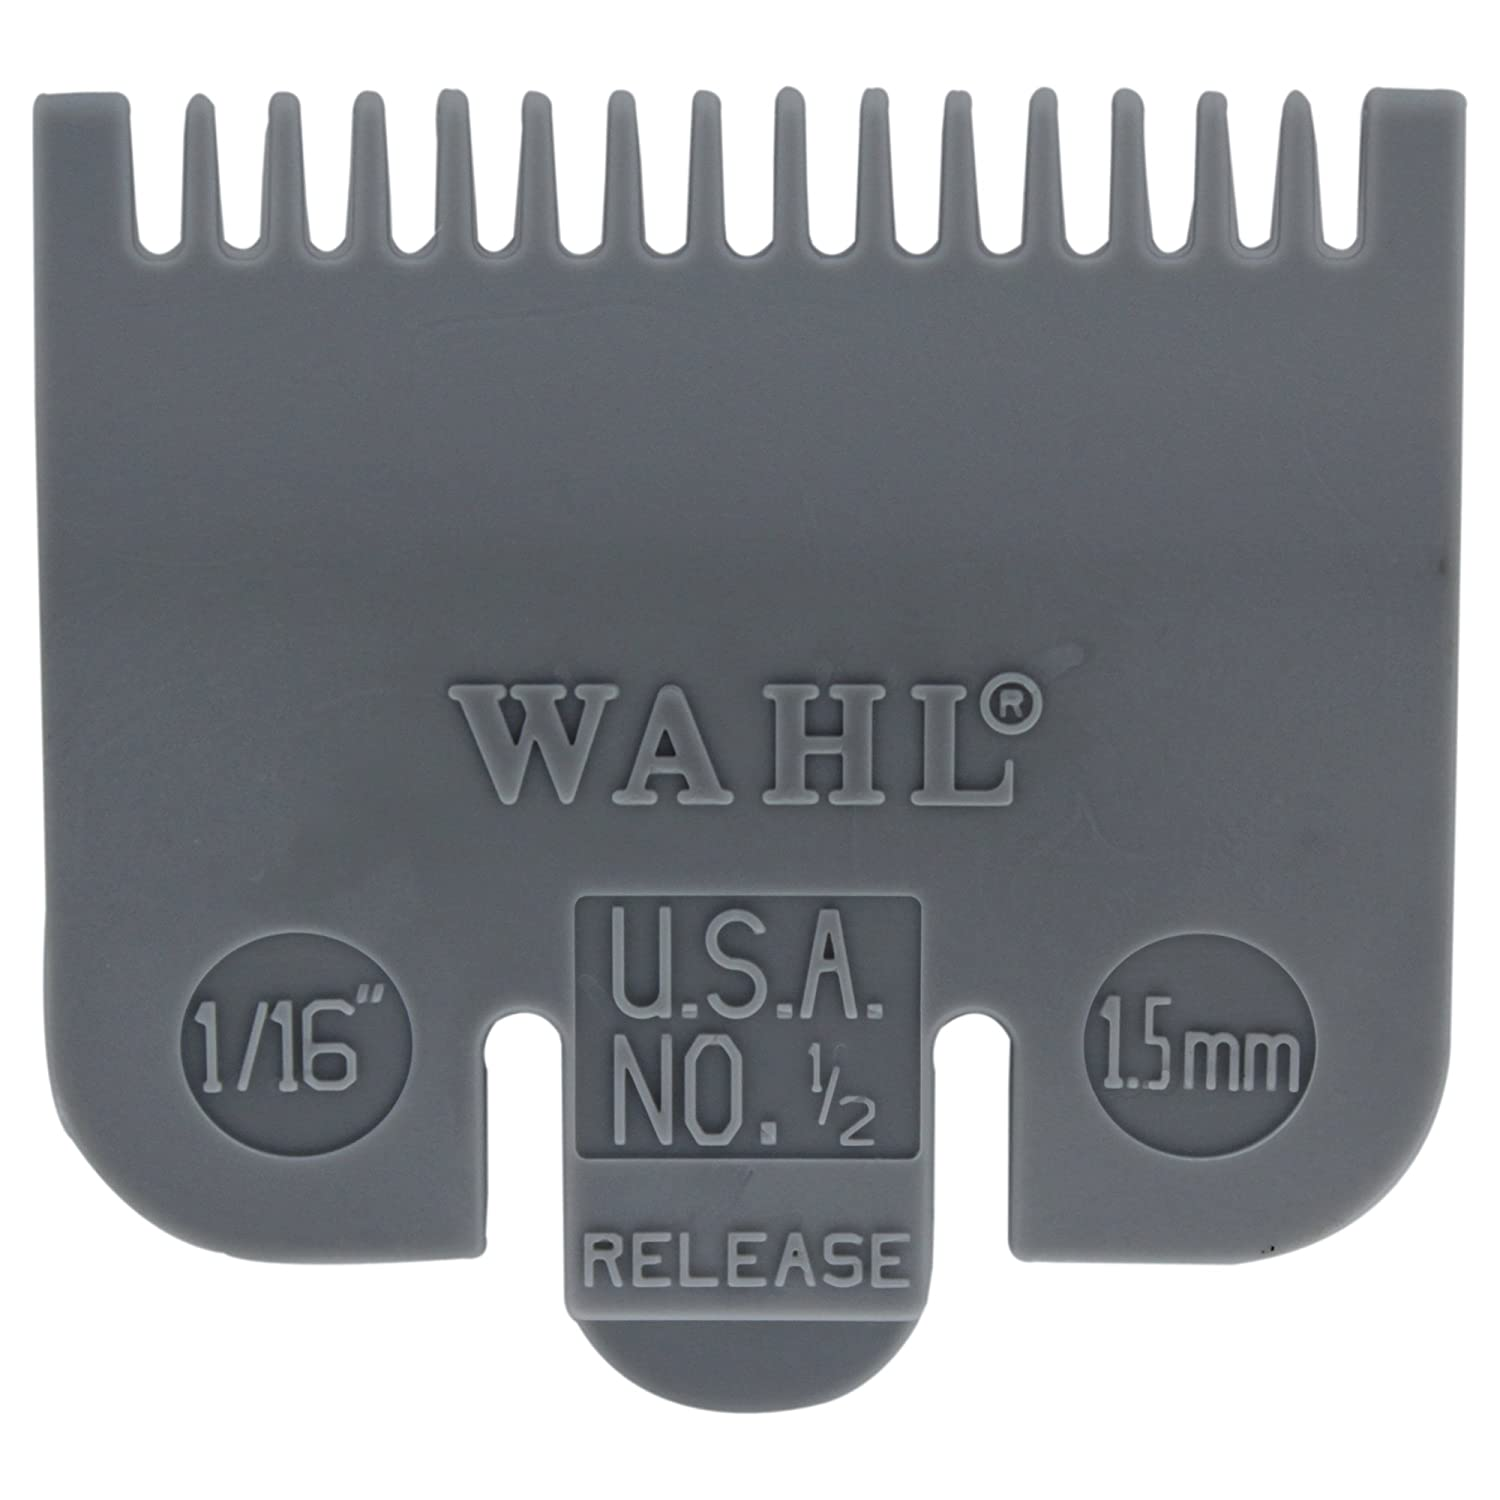 Wahl Professional Color Coded Comb Attachment #3137-101 – Grey #1/2 – 1/16 (1.5mm) – Great for Professional Stylists and Barbers WCGUIDE